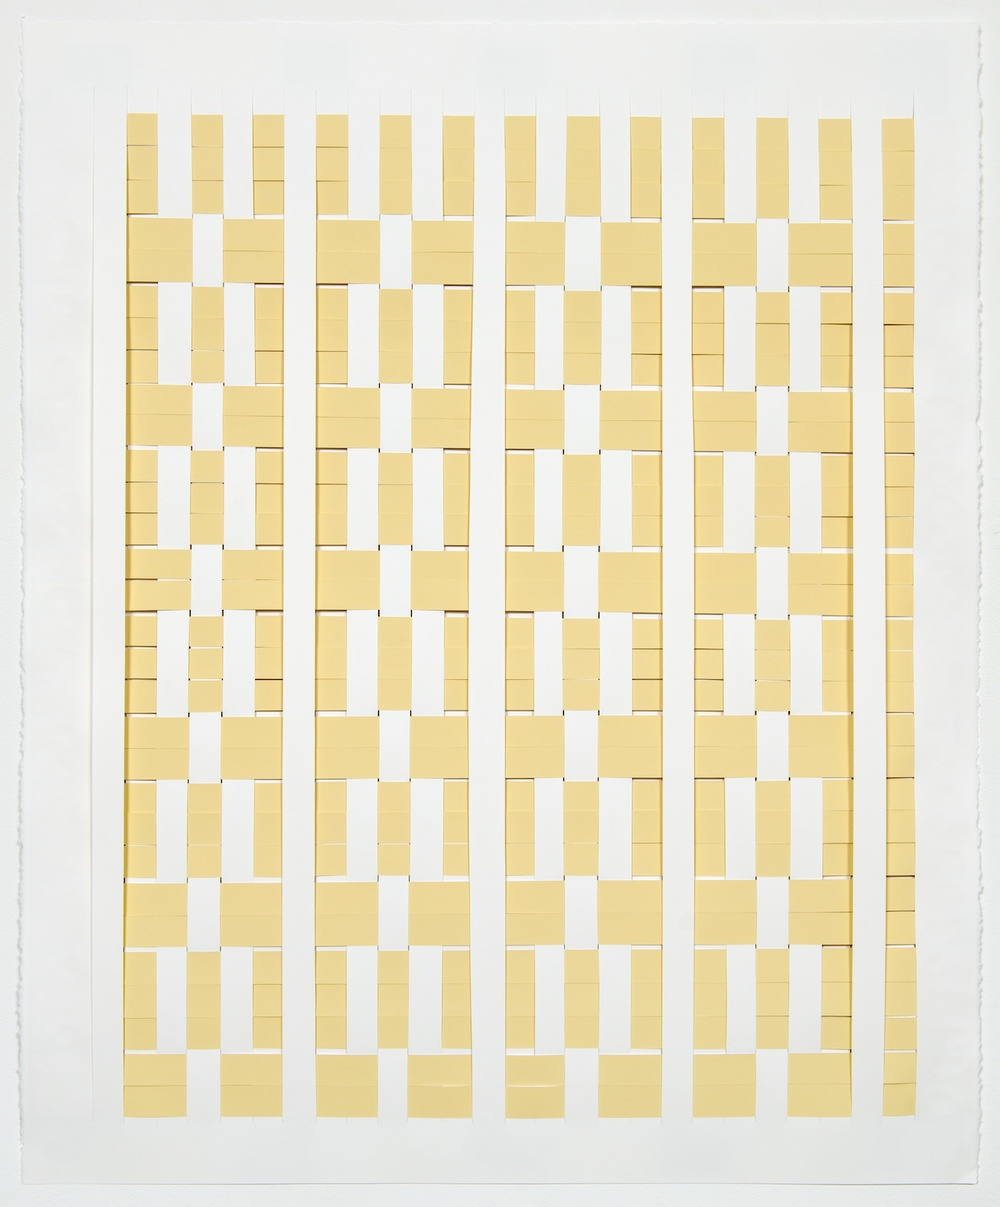 Michelle Graber  Untitled  2013 Paper and Color-aid 36h x 30w in  MGrab322